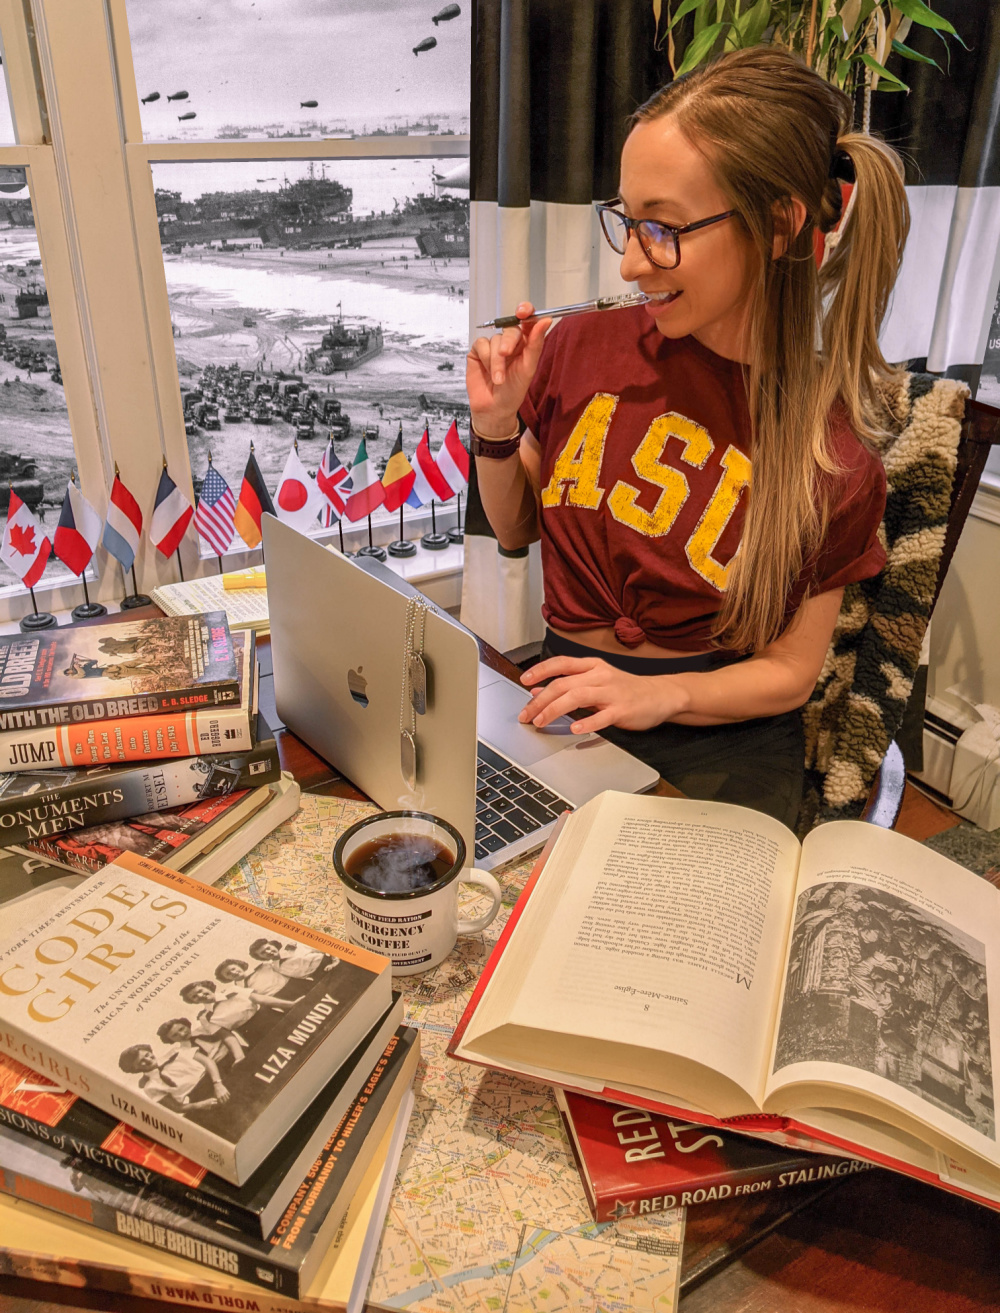 Masters degree in World War II Studies from Arizona State University and the National WWII Museum